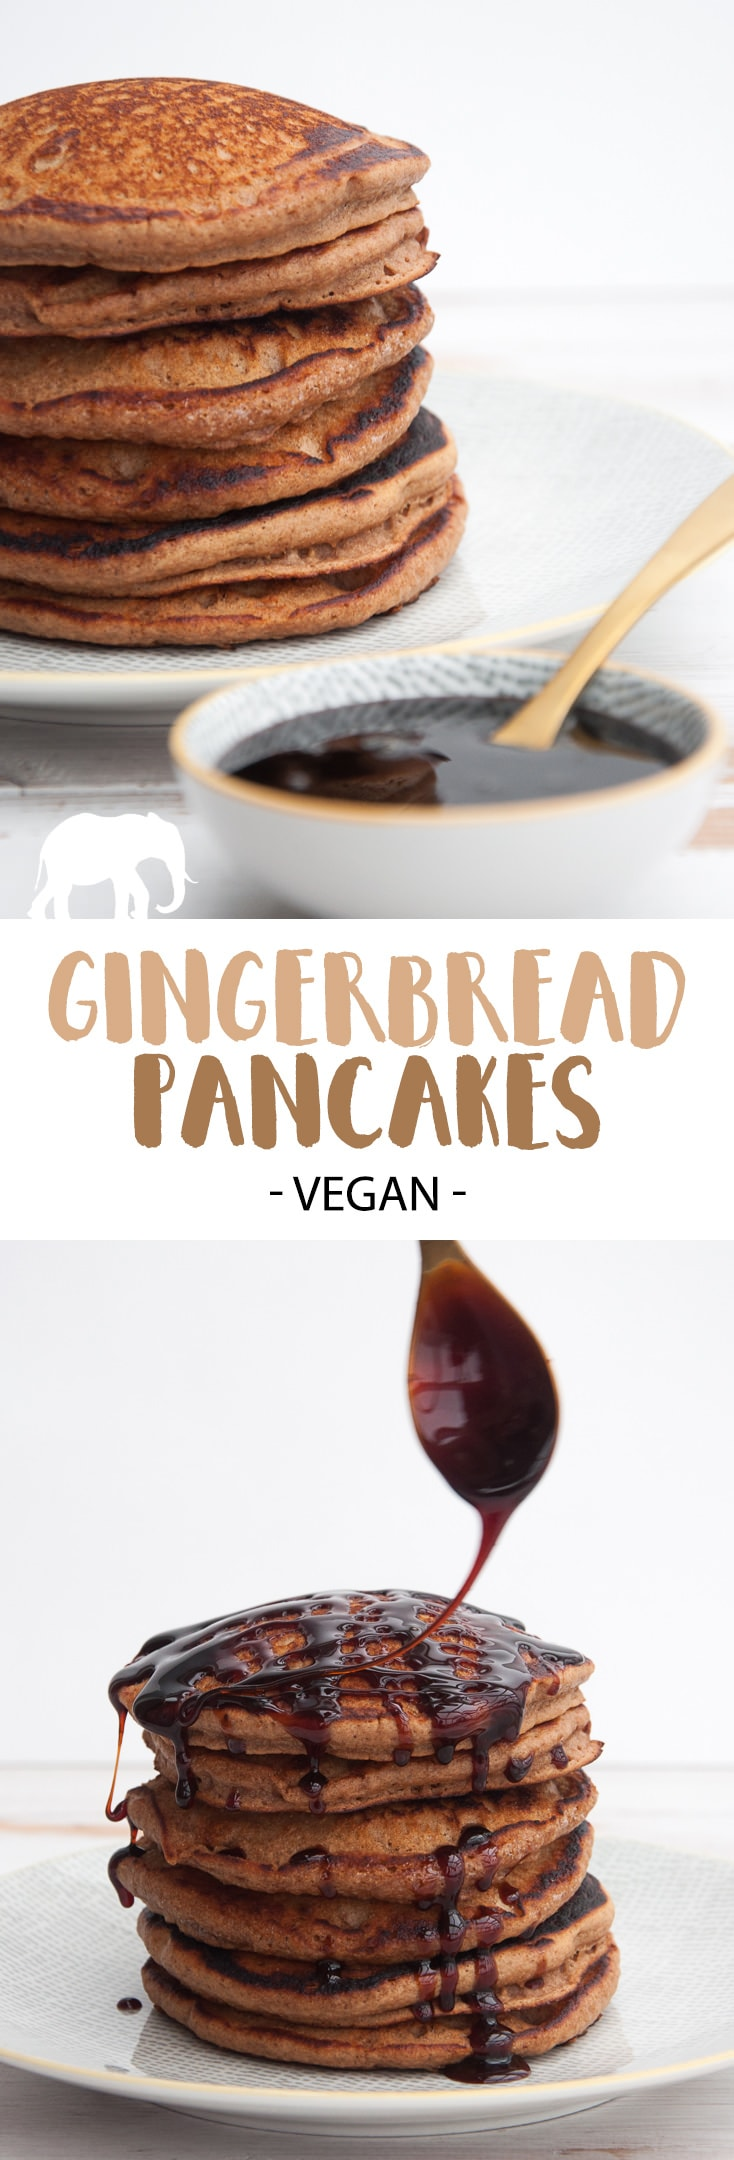 Vegan Gingerbread Pancakes with date syrup | ElephantasticVegan.com #vegan #gingerbread #pancakes #christmas